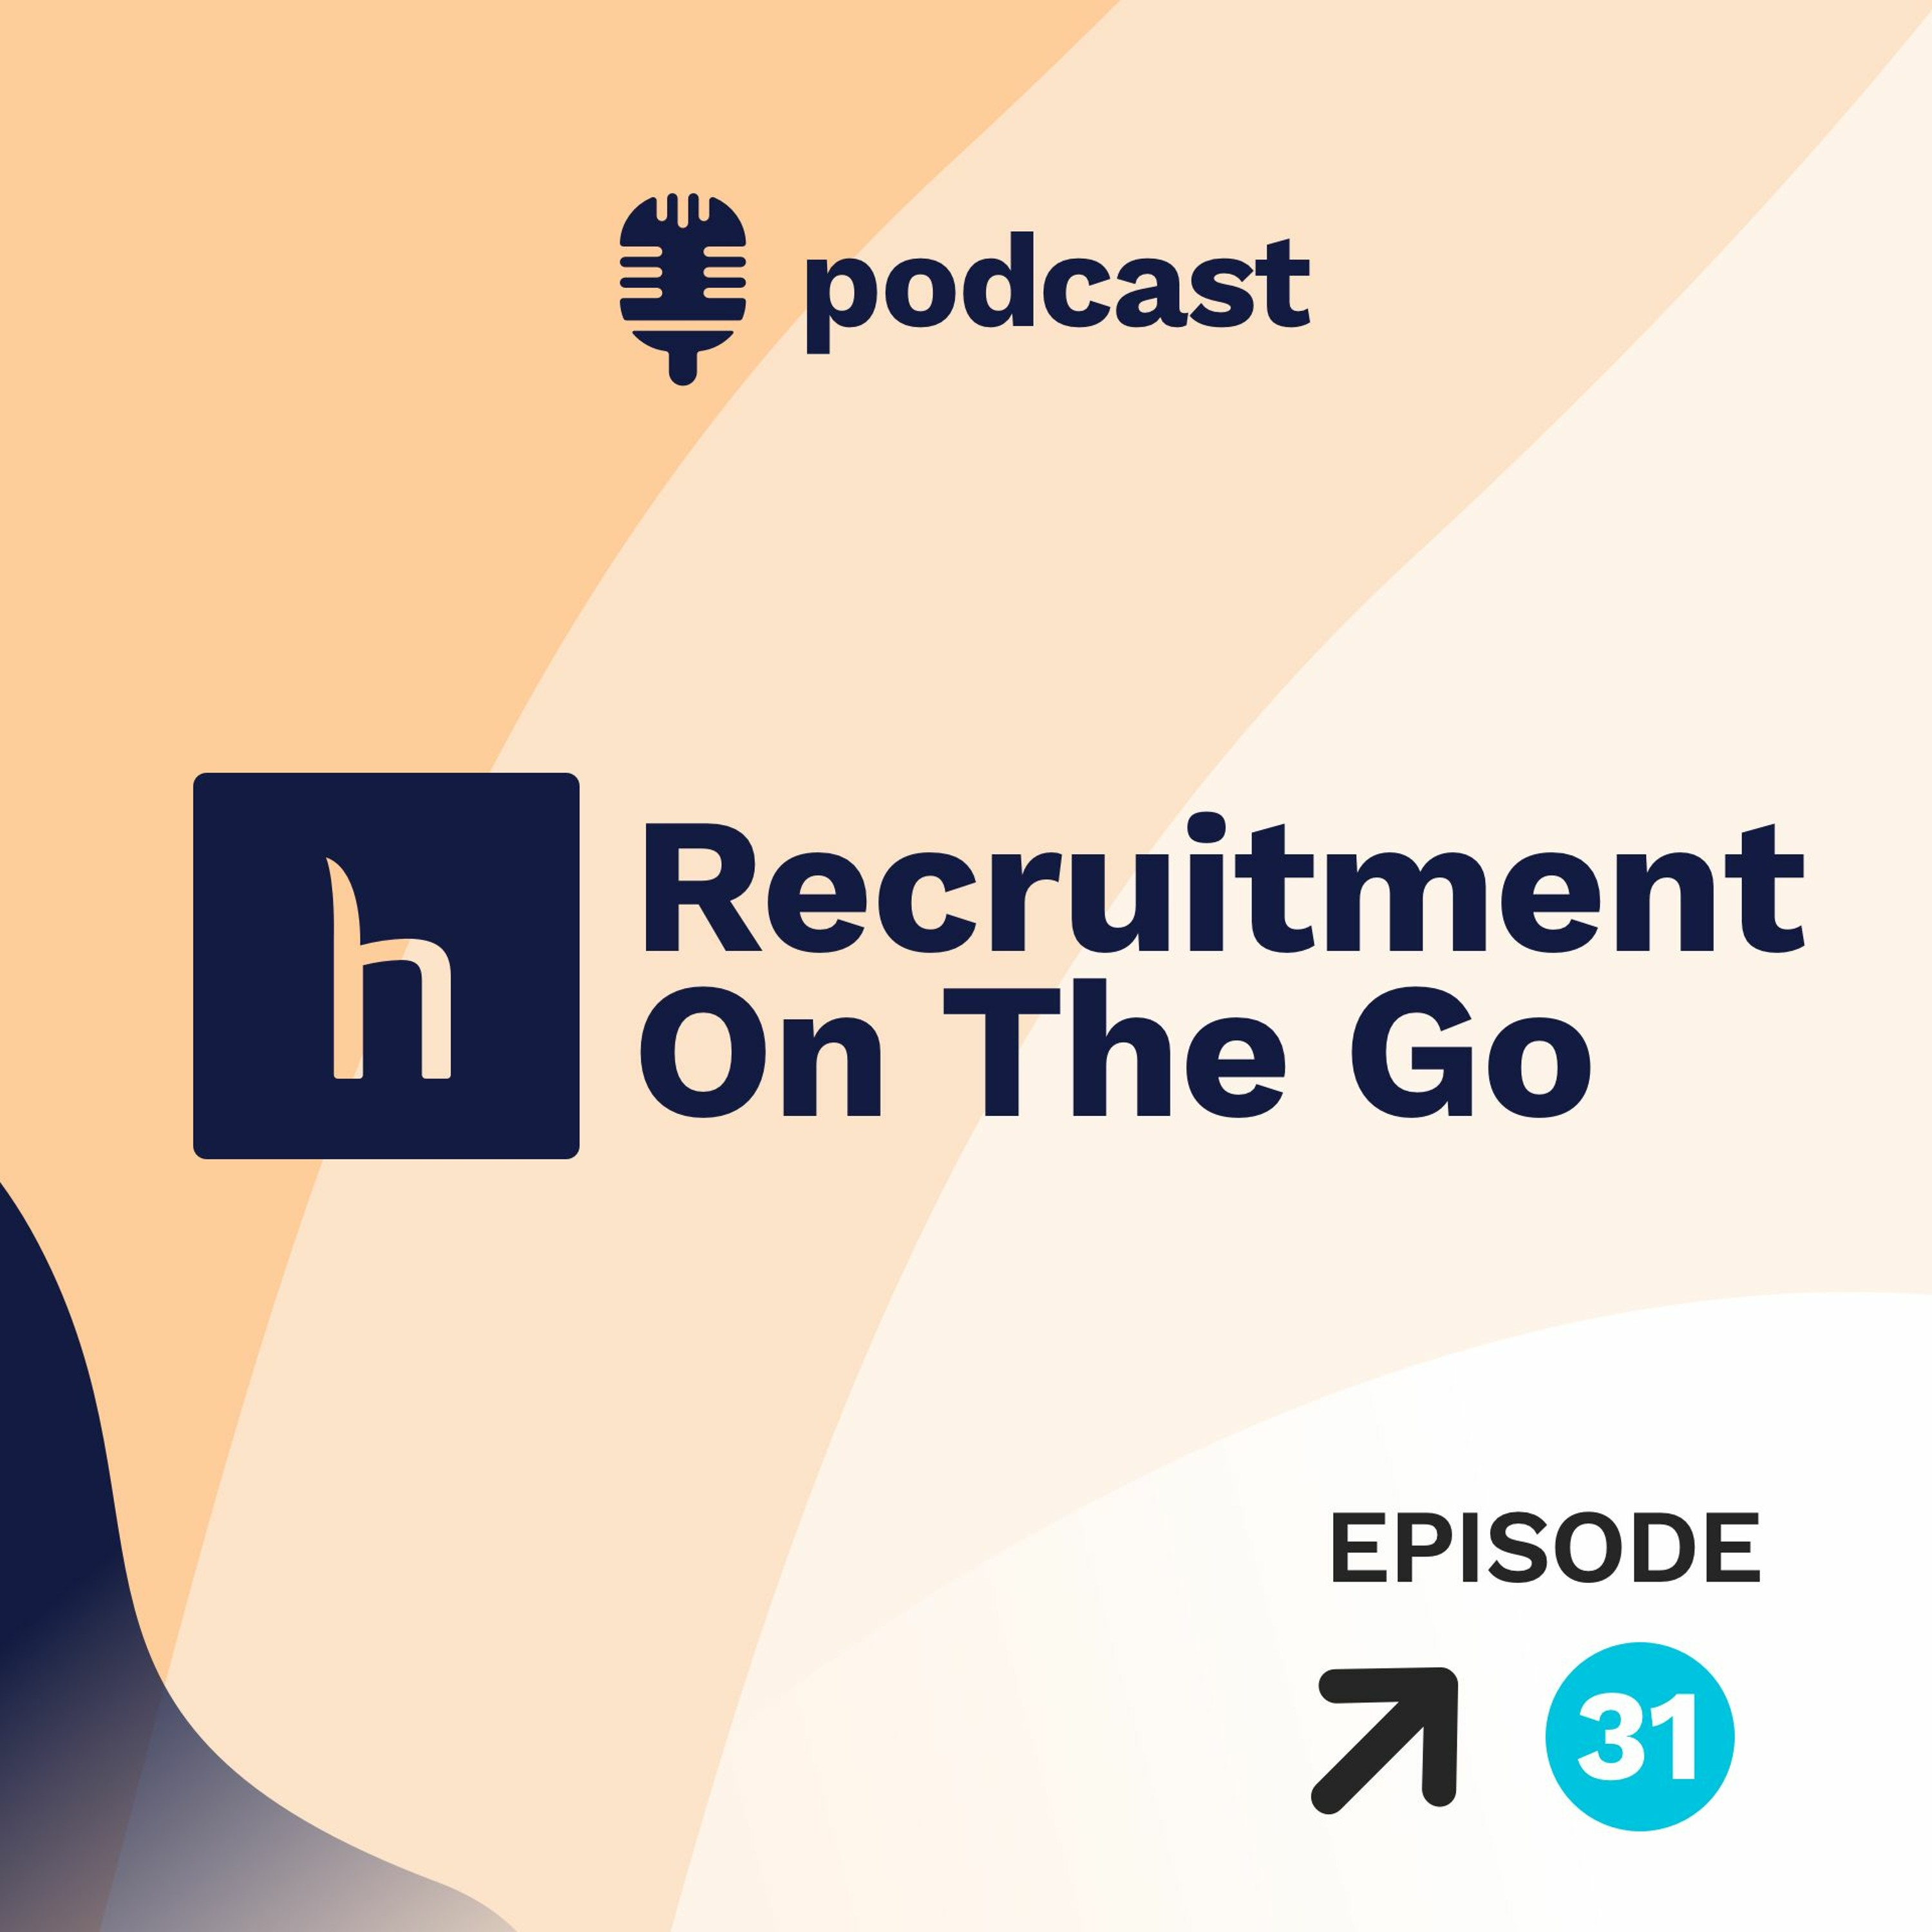 7 Best Practices For Corporate Recruiting - Episode 31 - Season 2